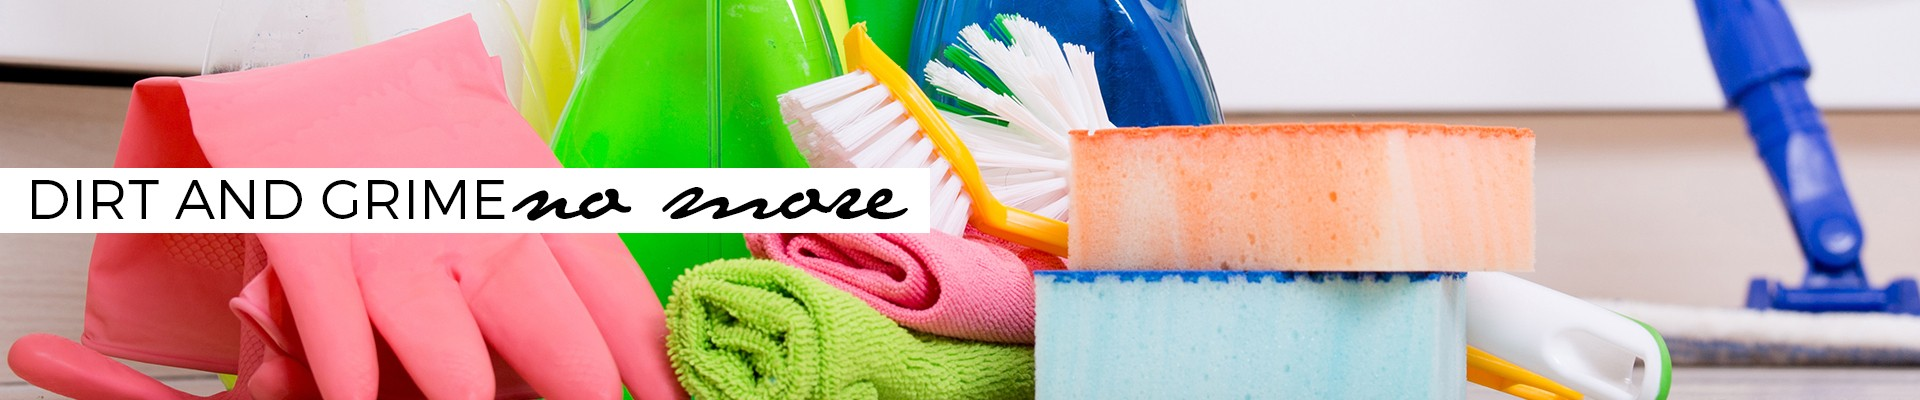 Dirt and grime no more - cleaning products